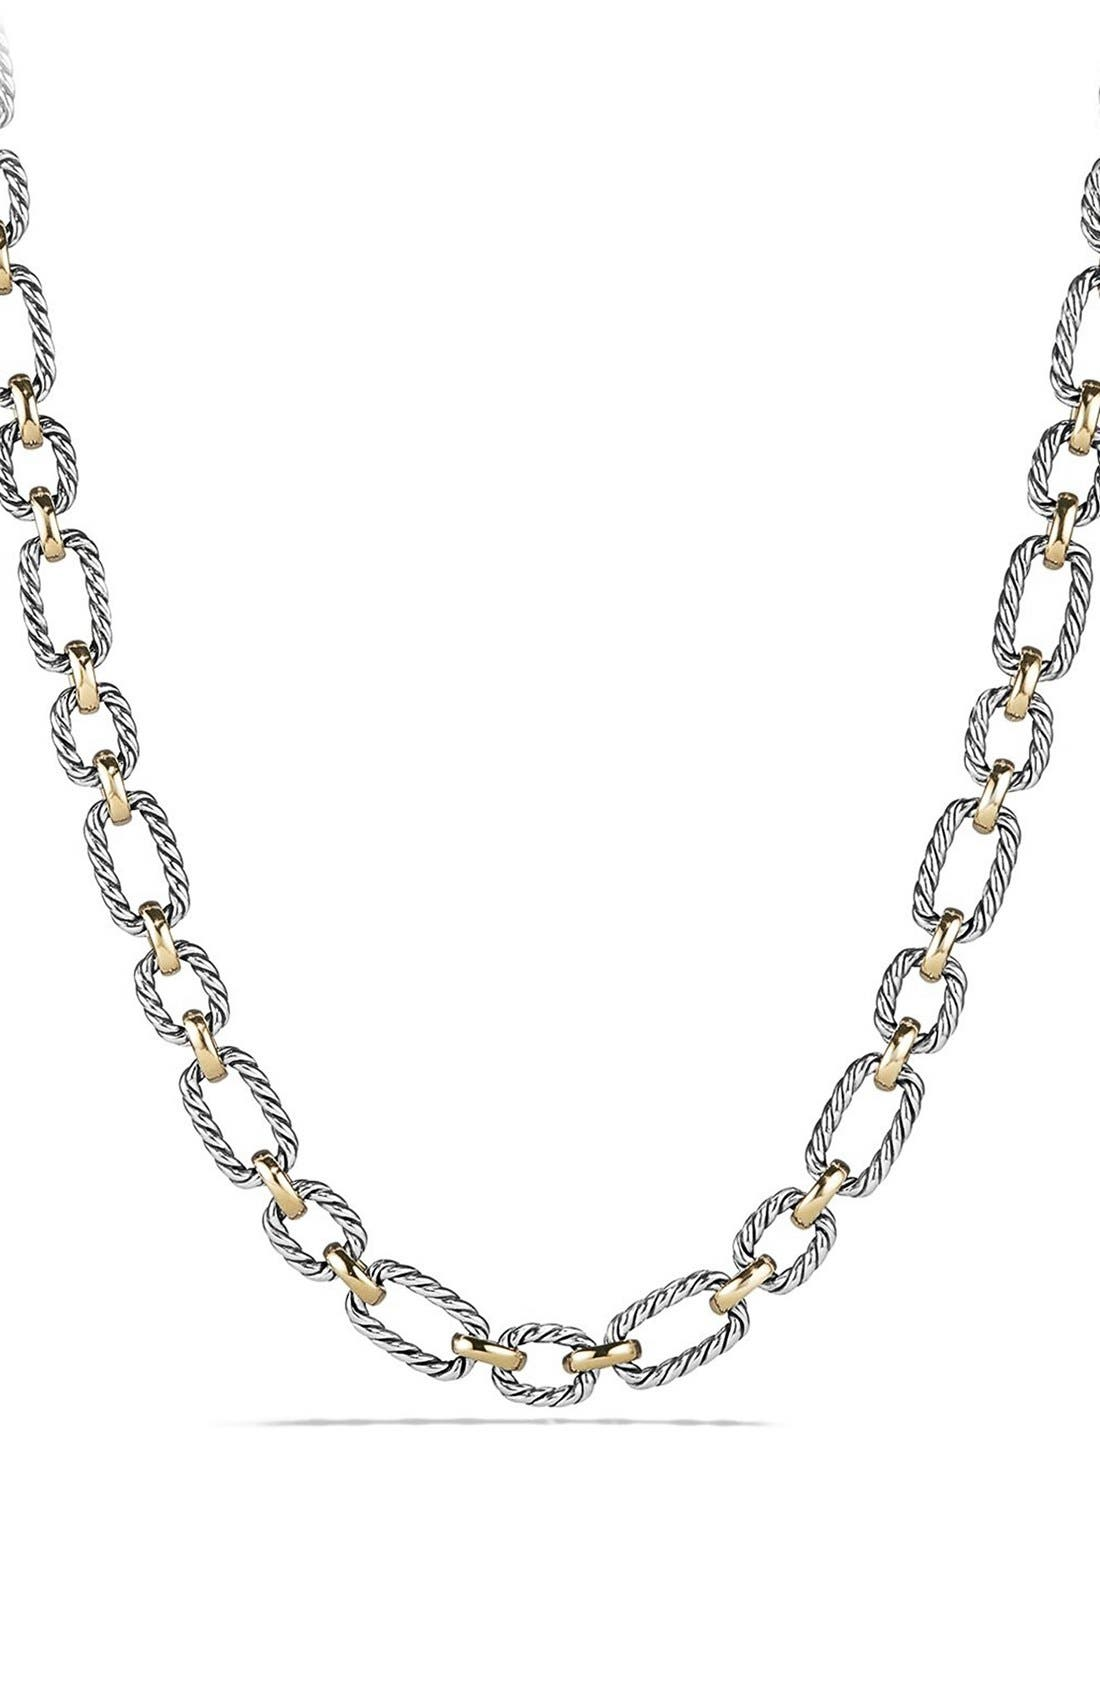 Alternate Image 1 Selected - David Yurman 'Chain' Cushion Link Necklace with Sapphires & 18K Gold